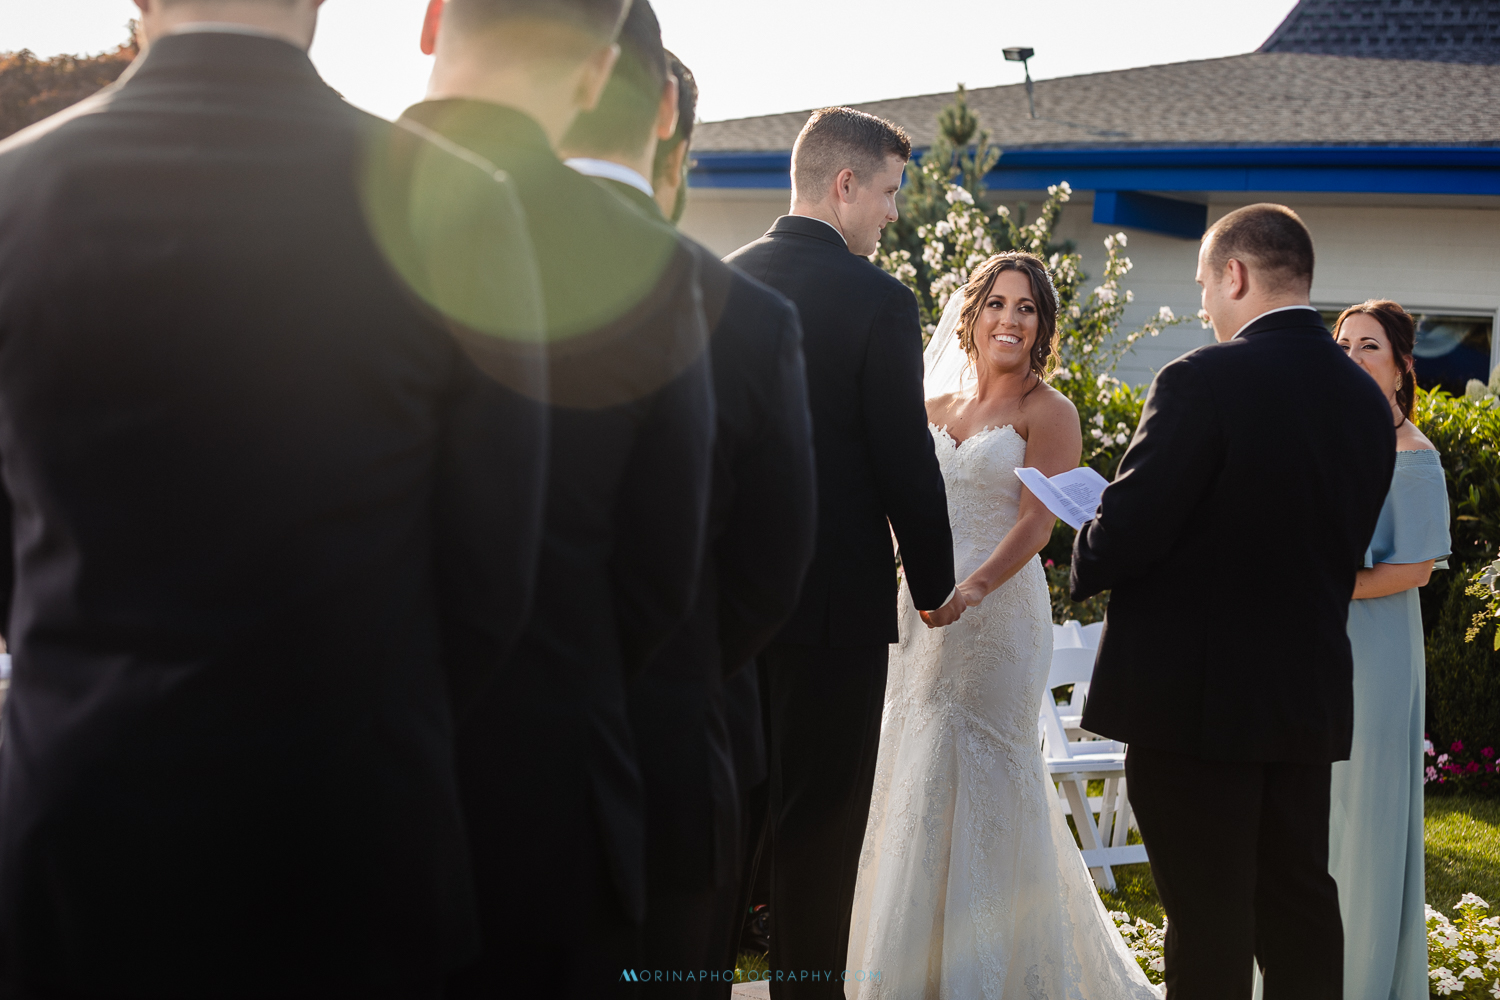 Amanda & Austin wedding at Crystal Point Yacht Club 72.jpg